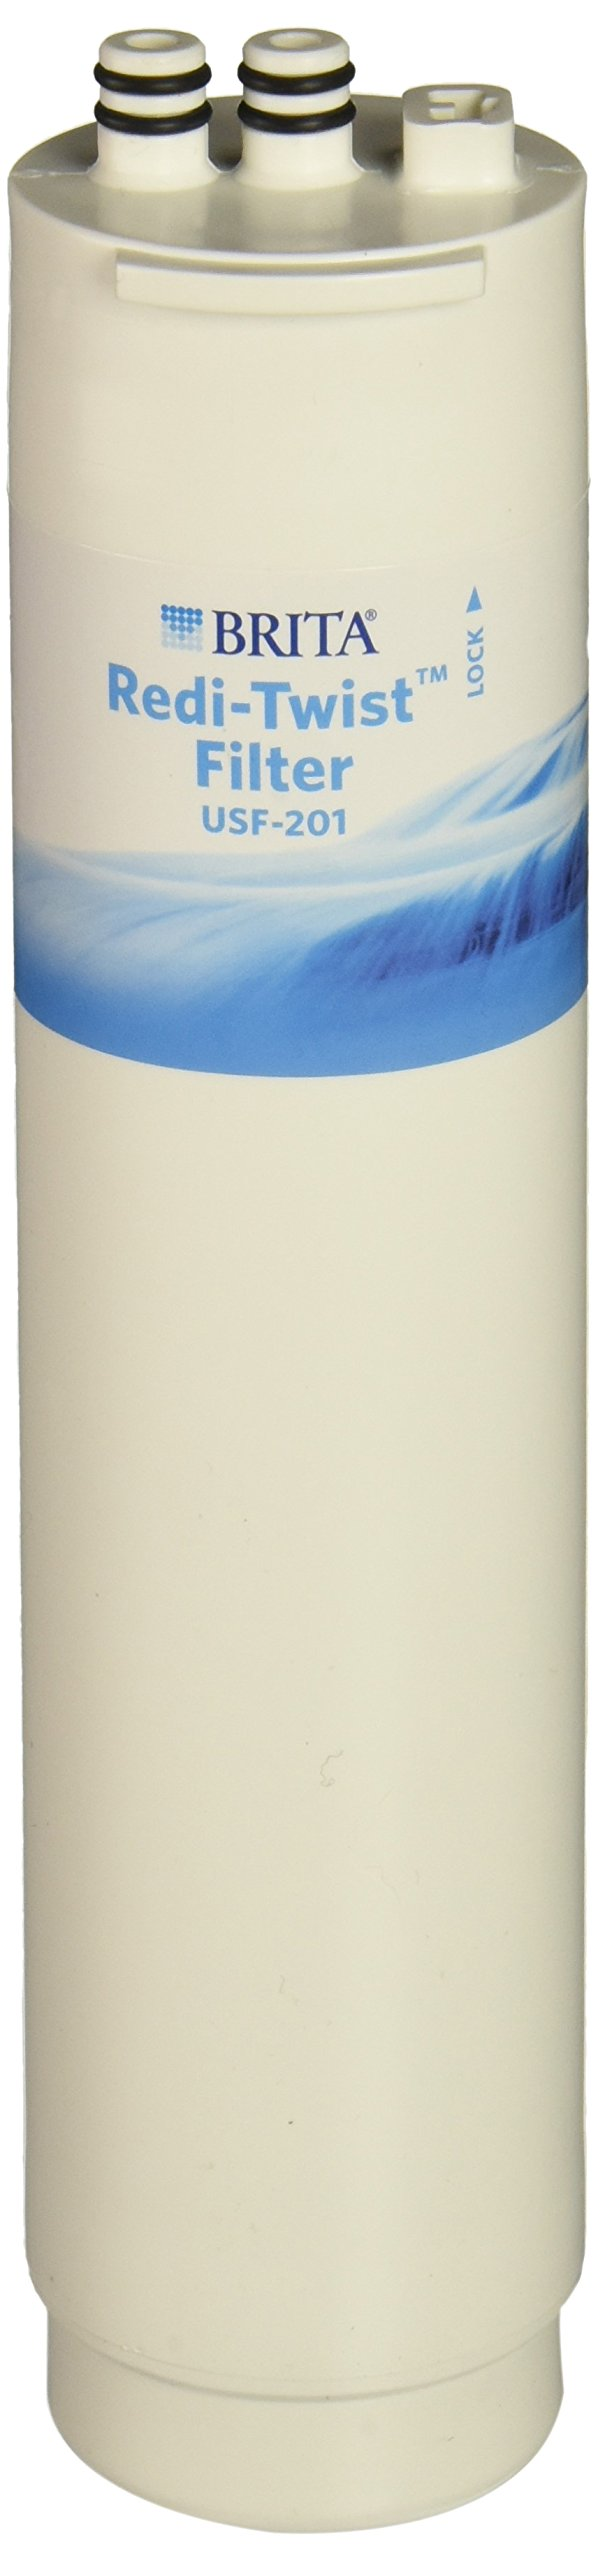 Brita Redi-Twist Under-Sink Replacement Filter, Level 1 USF-201